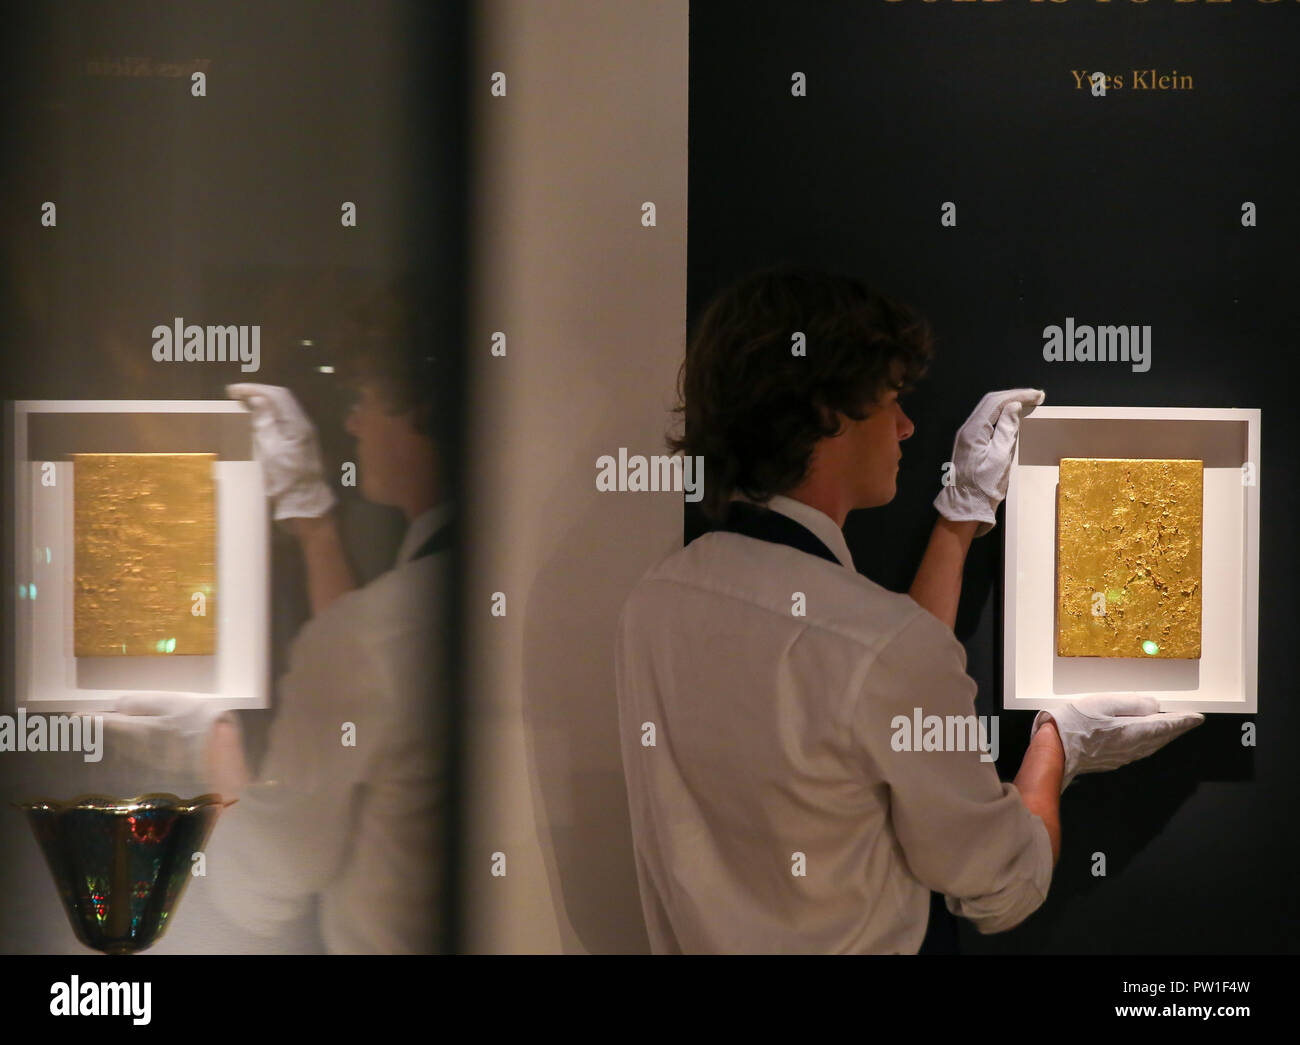 000 By 1961 Stock Photos & 000 By 1961 Stock Images - Alamy